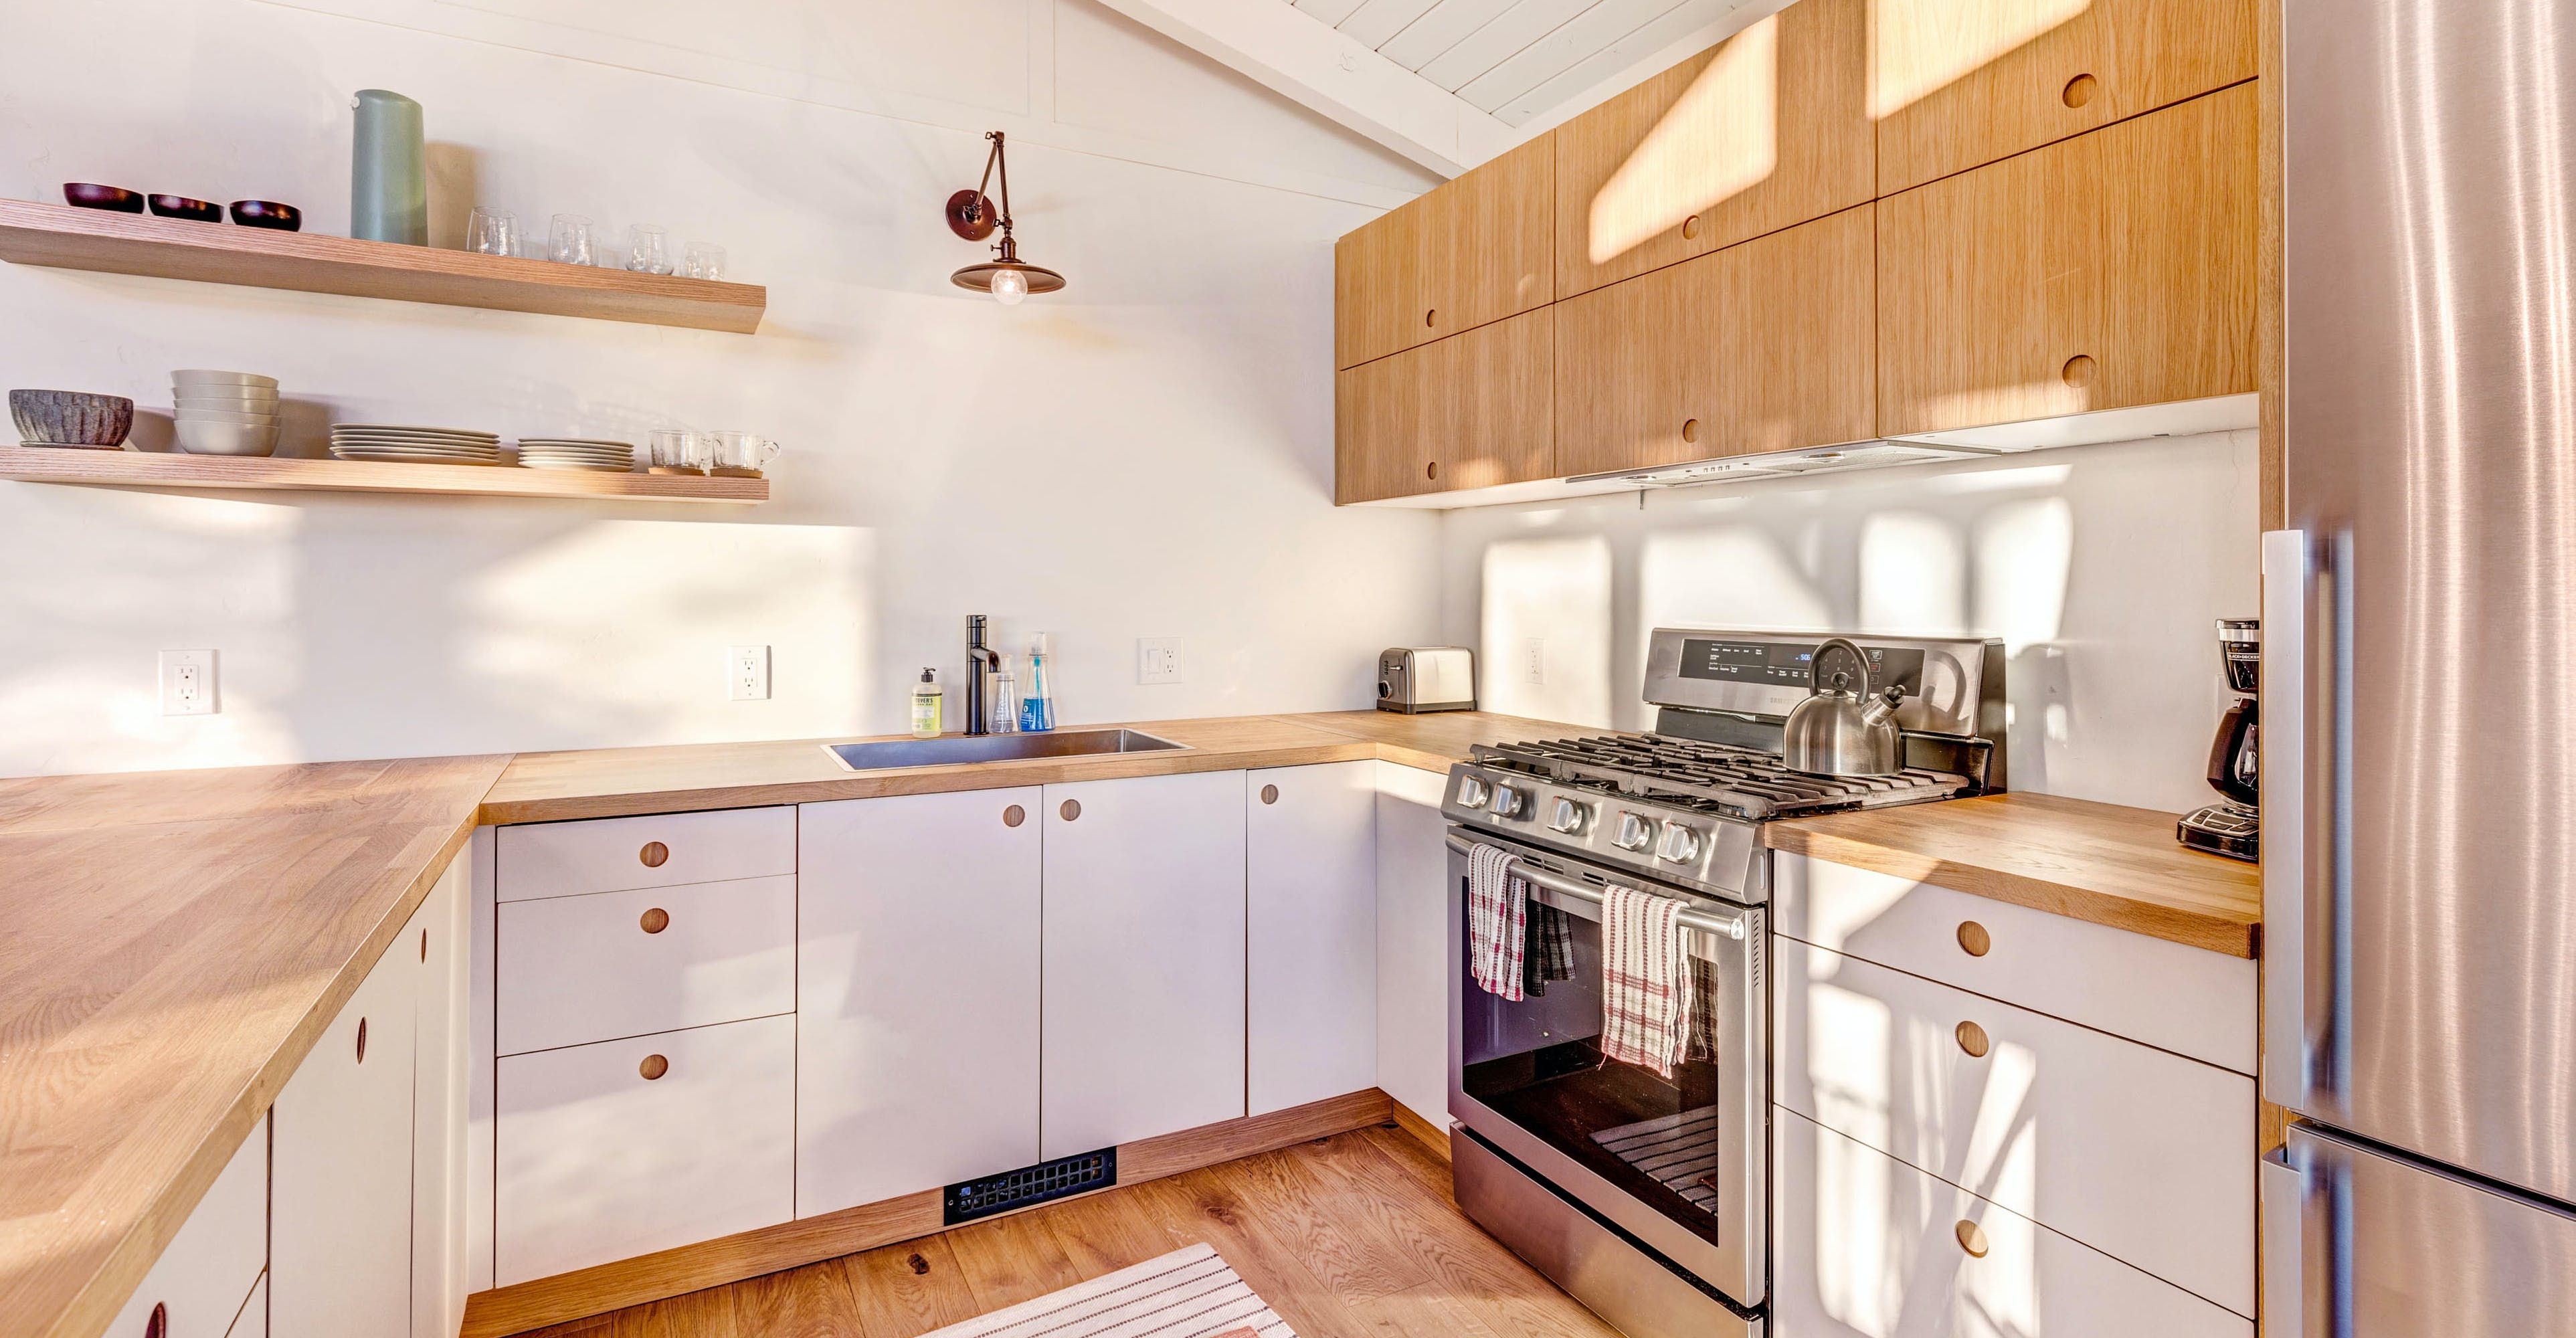 butcher block counters cover white cabinets in idyllwild, ca vacation home kitchen